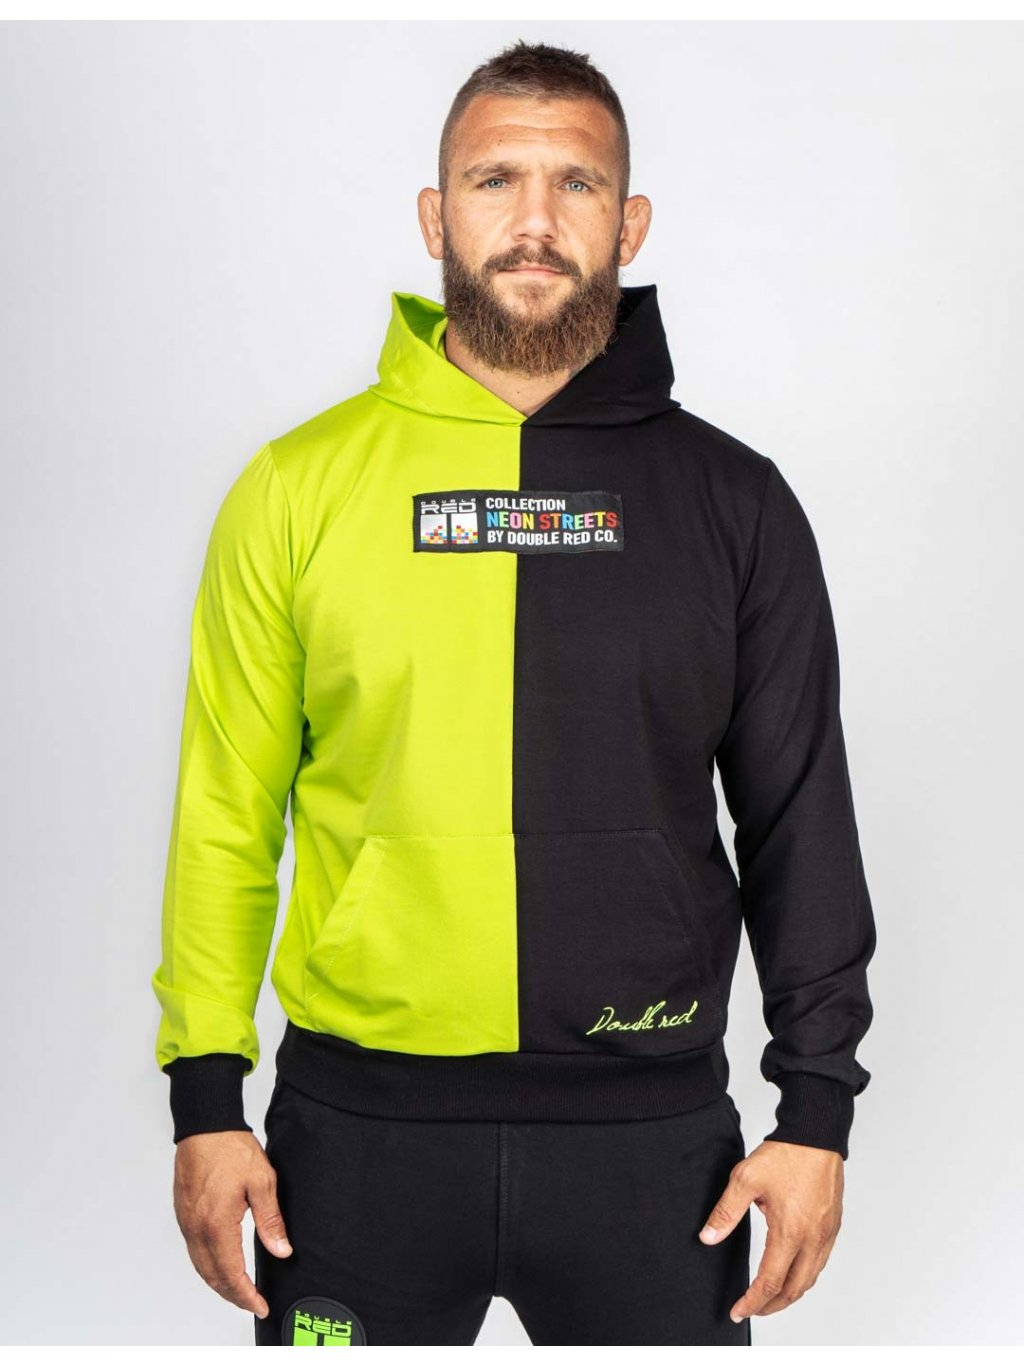 Pánská Mikina DOUBLE RED Hoodie DOUBLE FACE NEON Streets Collection Green/Black